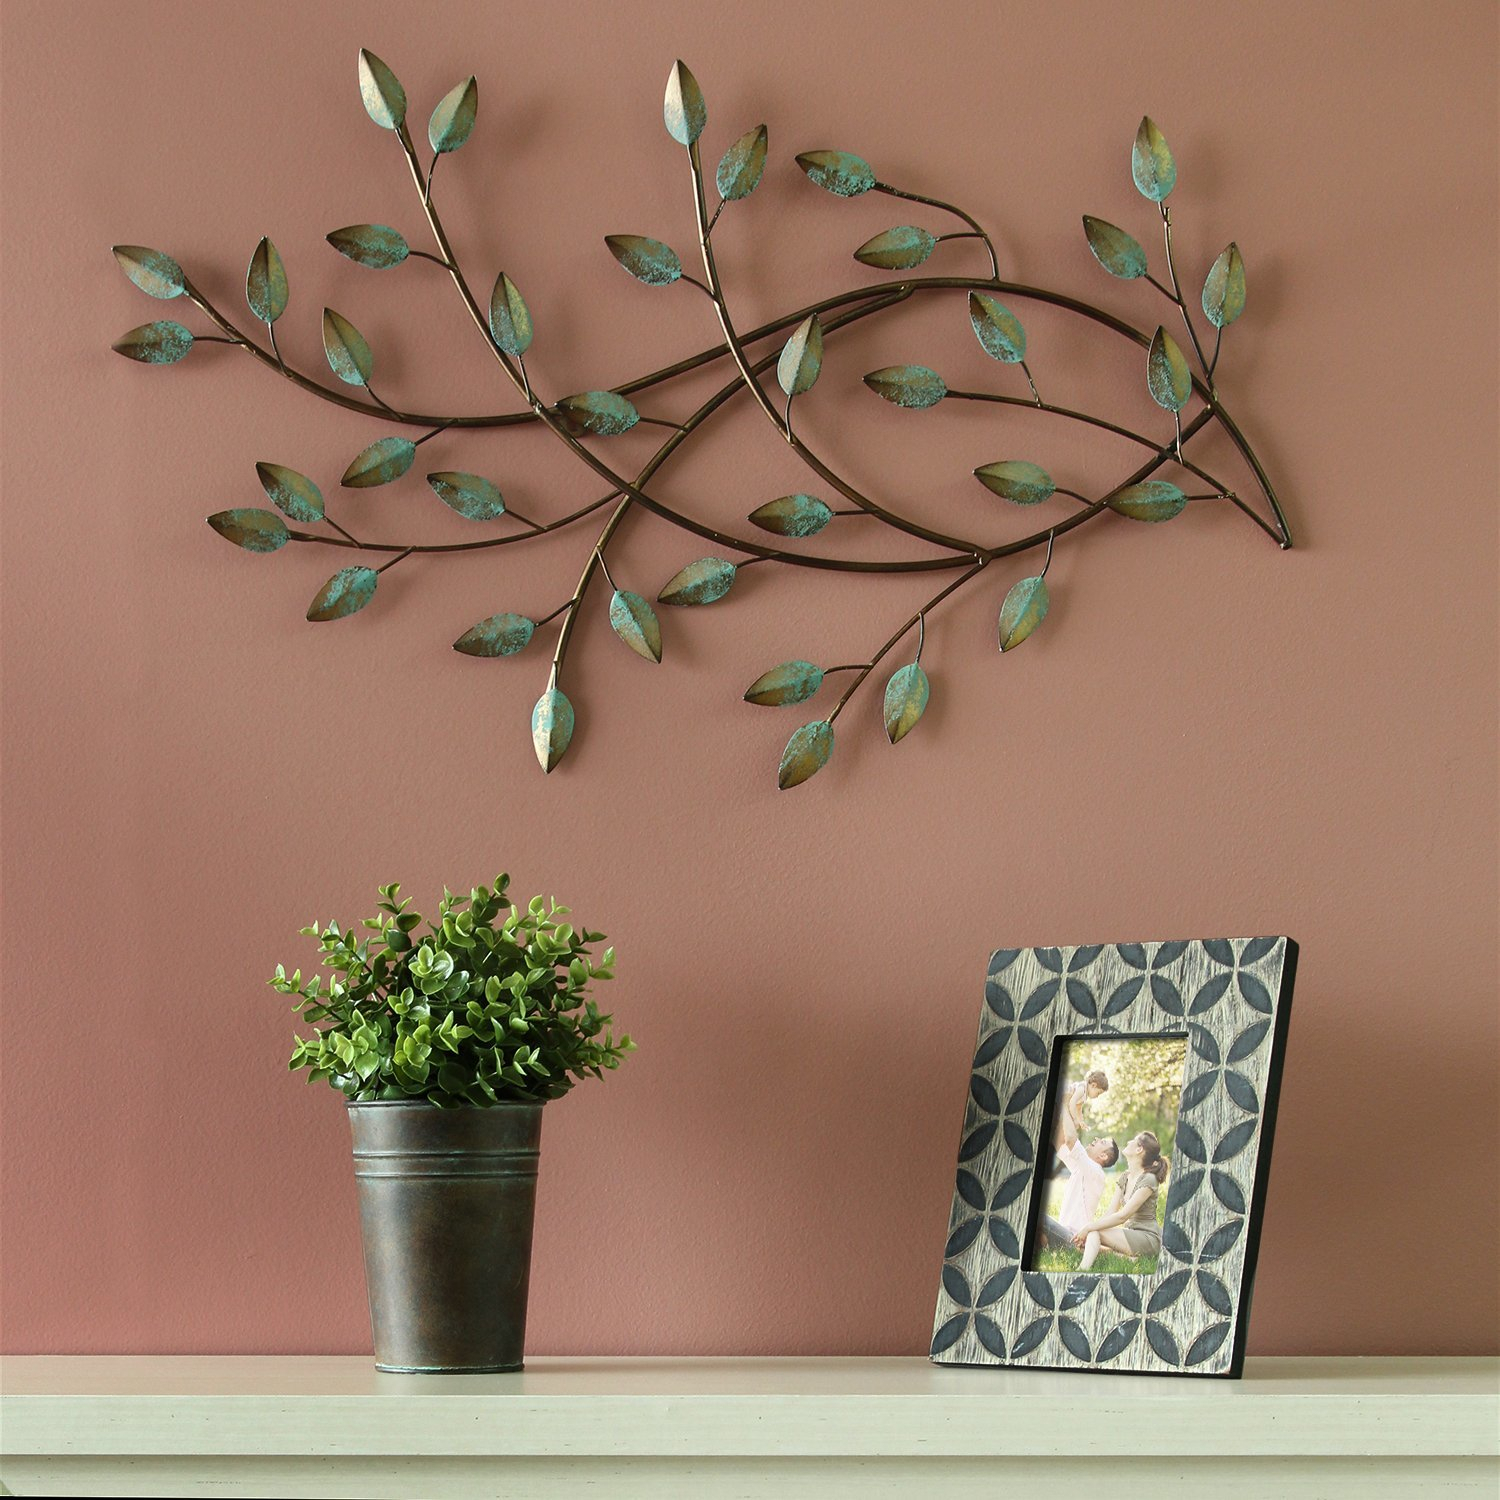 Wayfair For Best And Newest Wall Decor By Charlton Home (View 8 of 20)